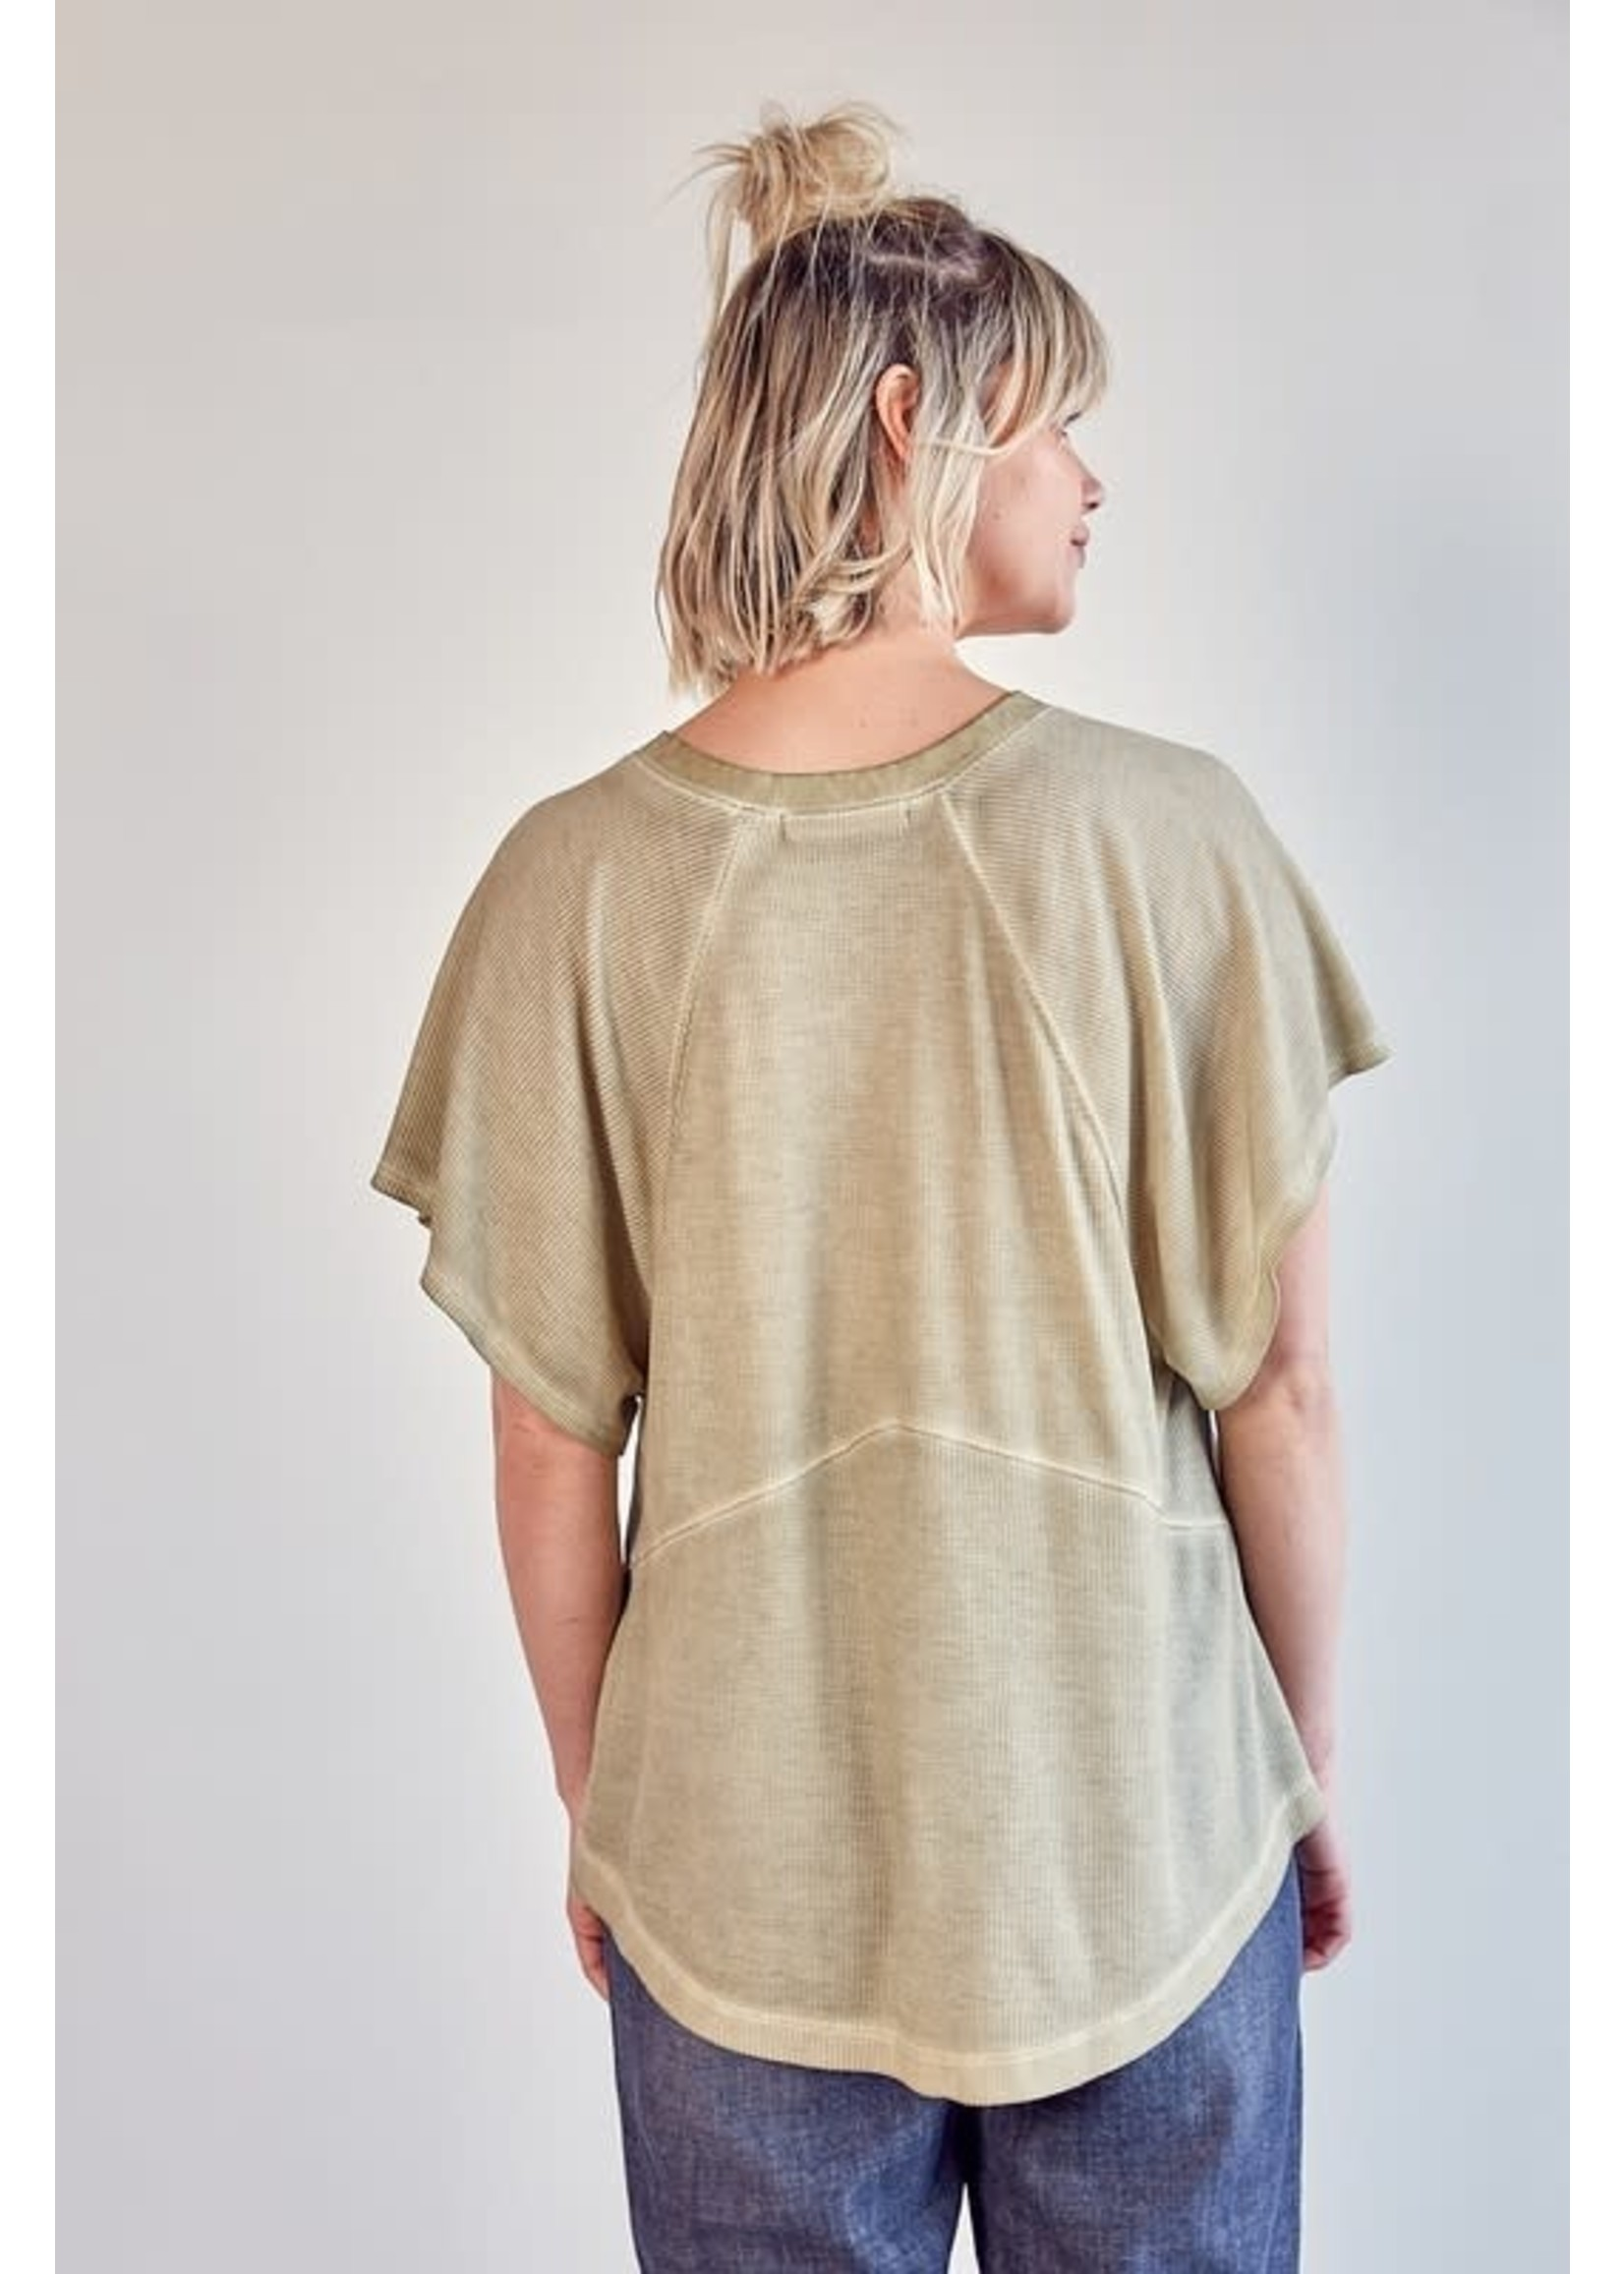 Mustard Seed Cold Shoulder Waffle Texture Top - S18328